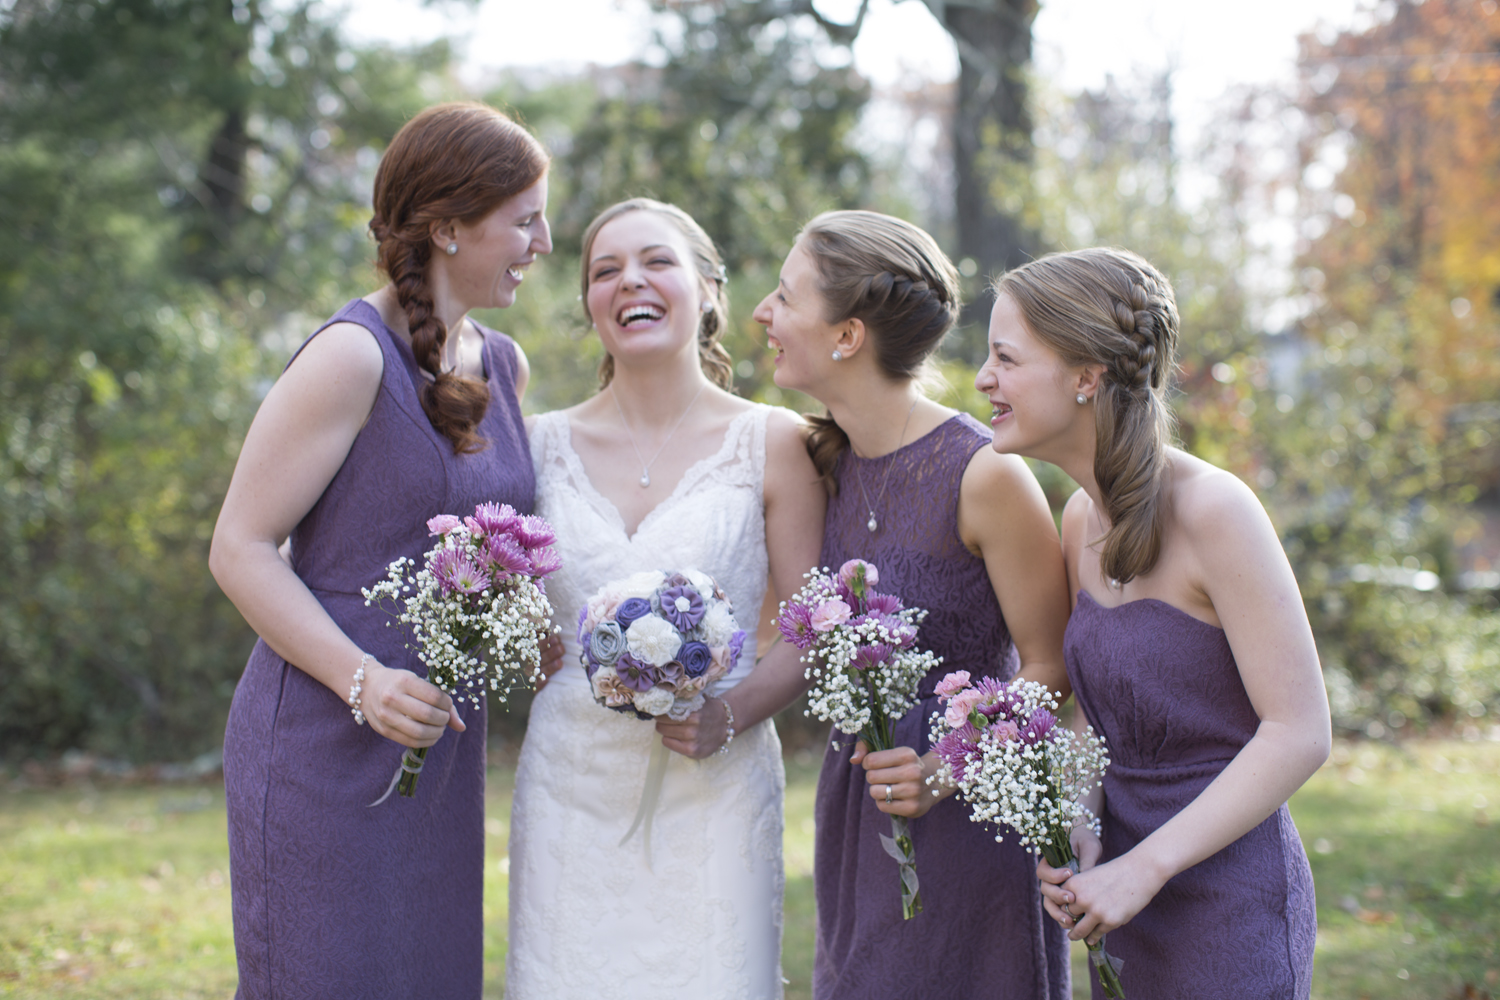 Bridesmaids in lavender dresses laugh with bride on her wedding day